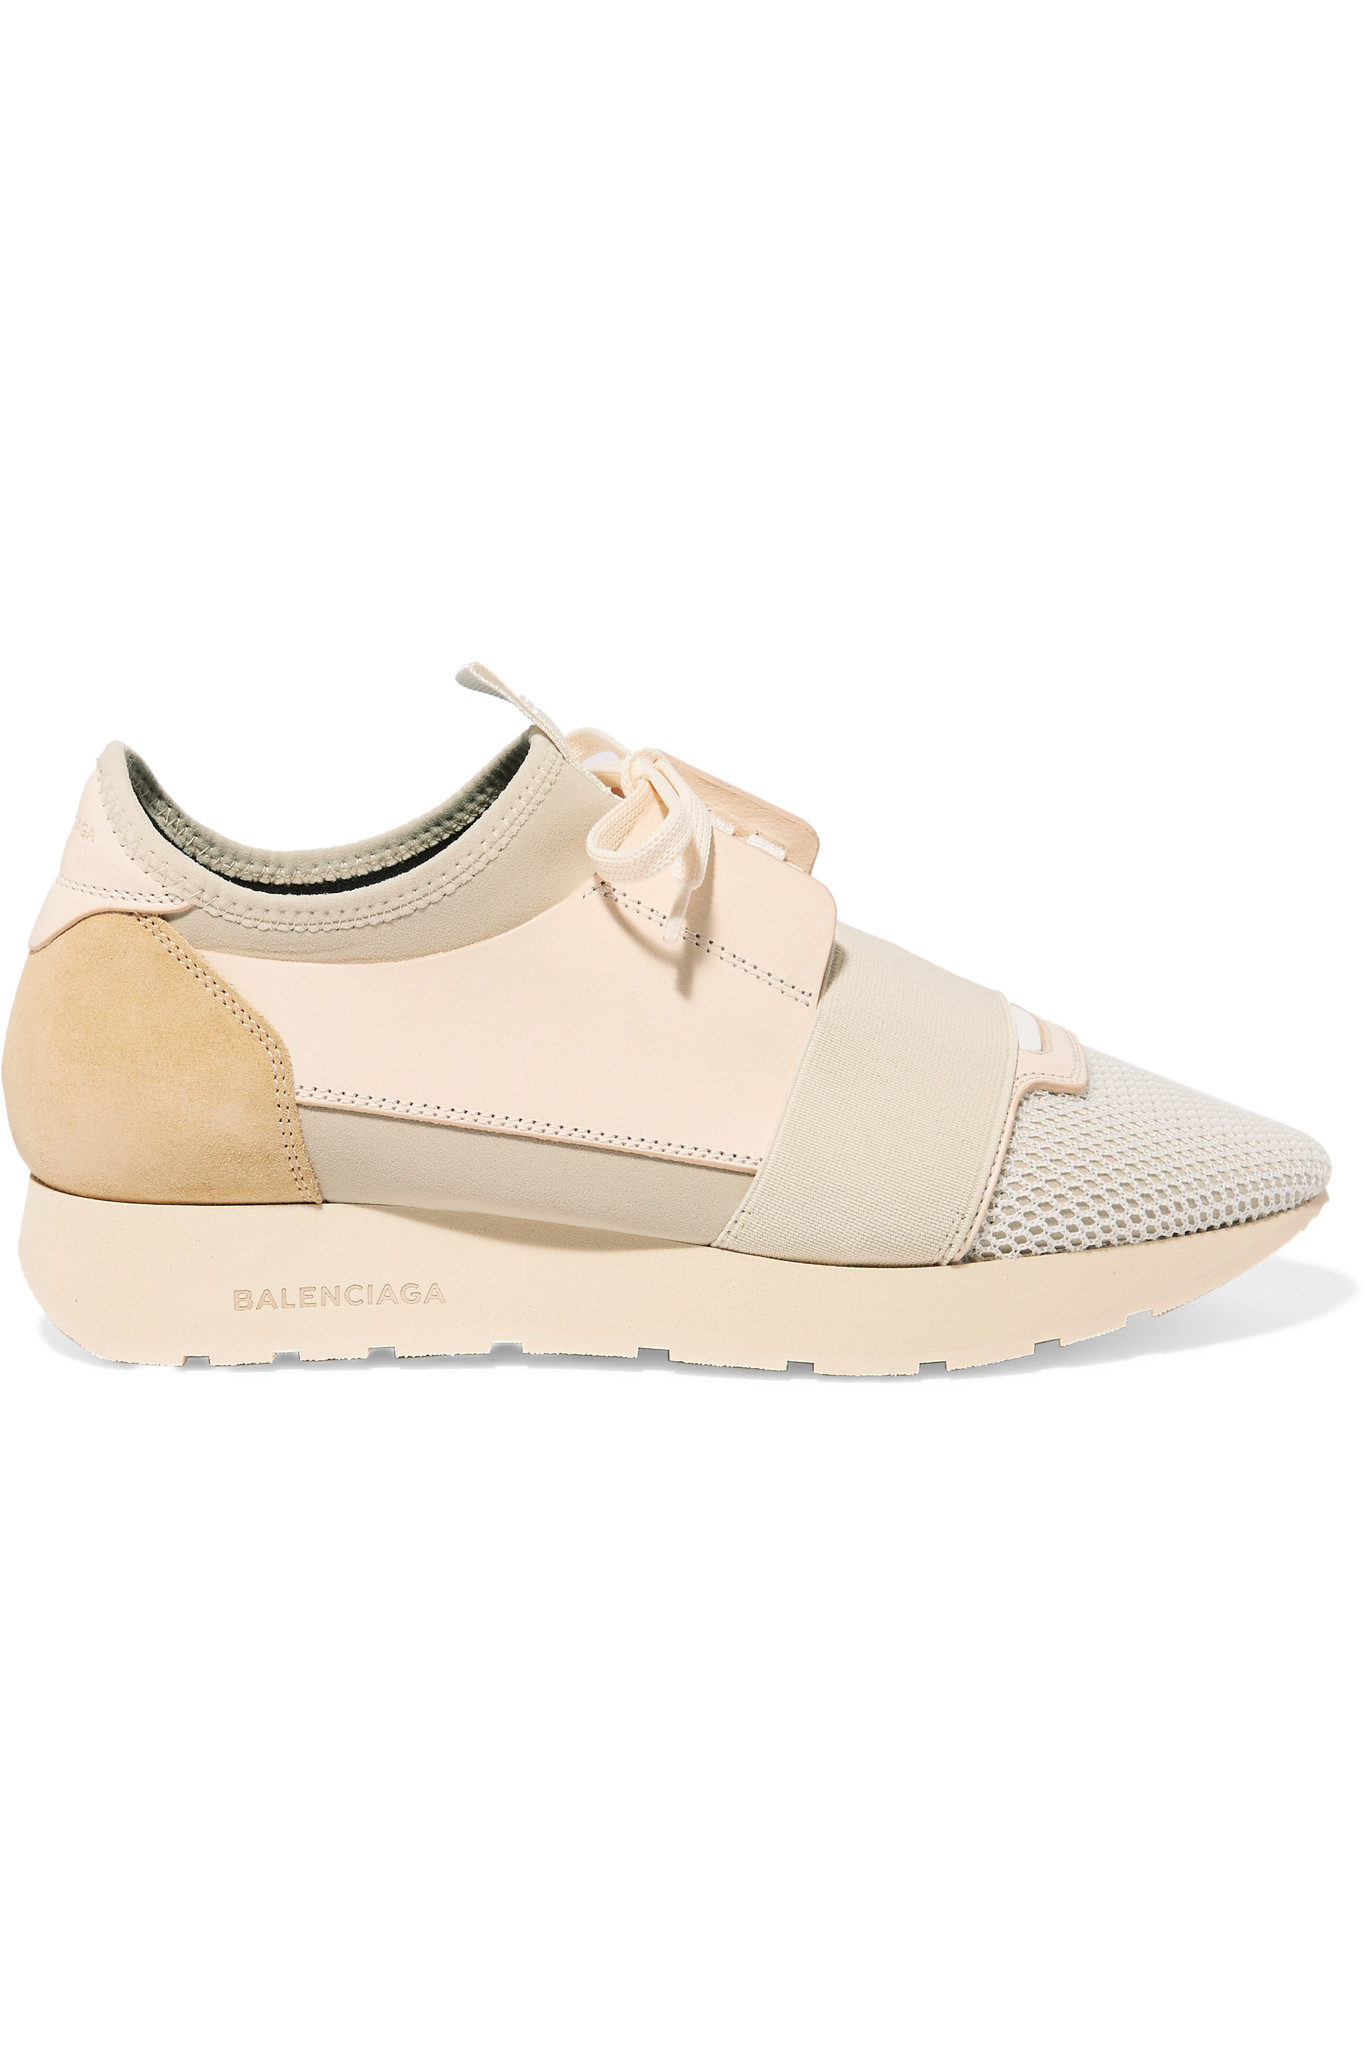 0c8748a0cfd Balenciaga Race Runner Leather, Mesh, Suede And Neoprene Sneakers in ...